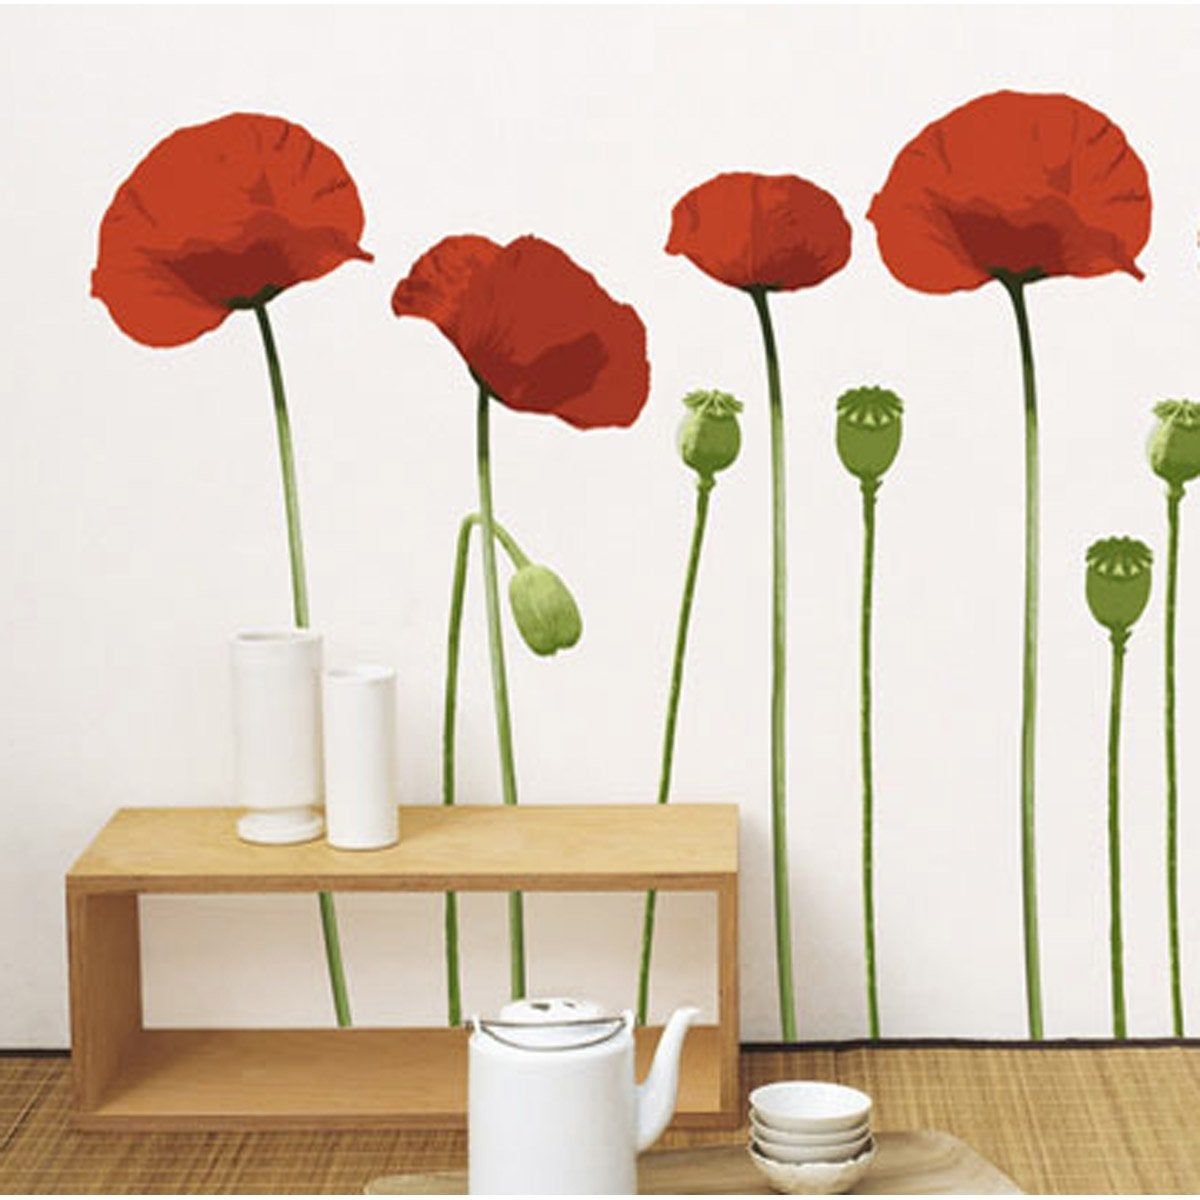 Sticker coquelicot 49 x 69 cm leroy merlin - Sticker mural leroy merlin ...